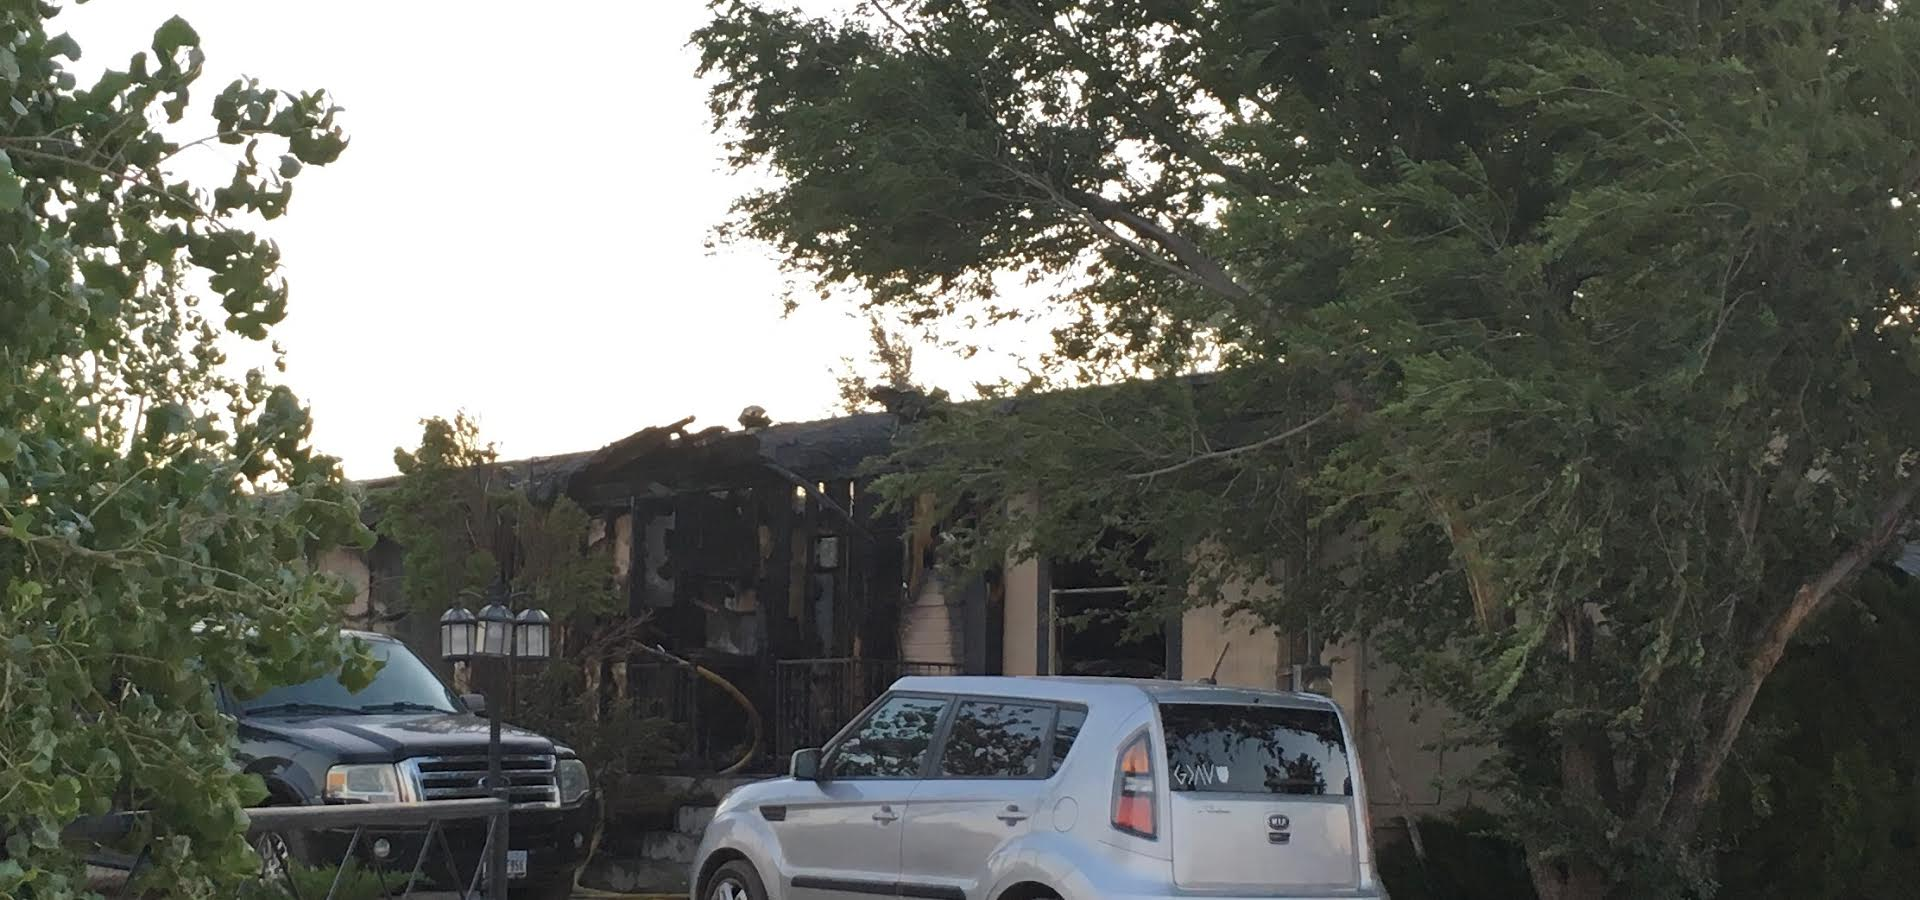 Aftermath of the trailer fire. (ABC 7 Amarillo - Nataziah Gipson)